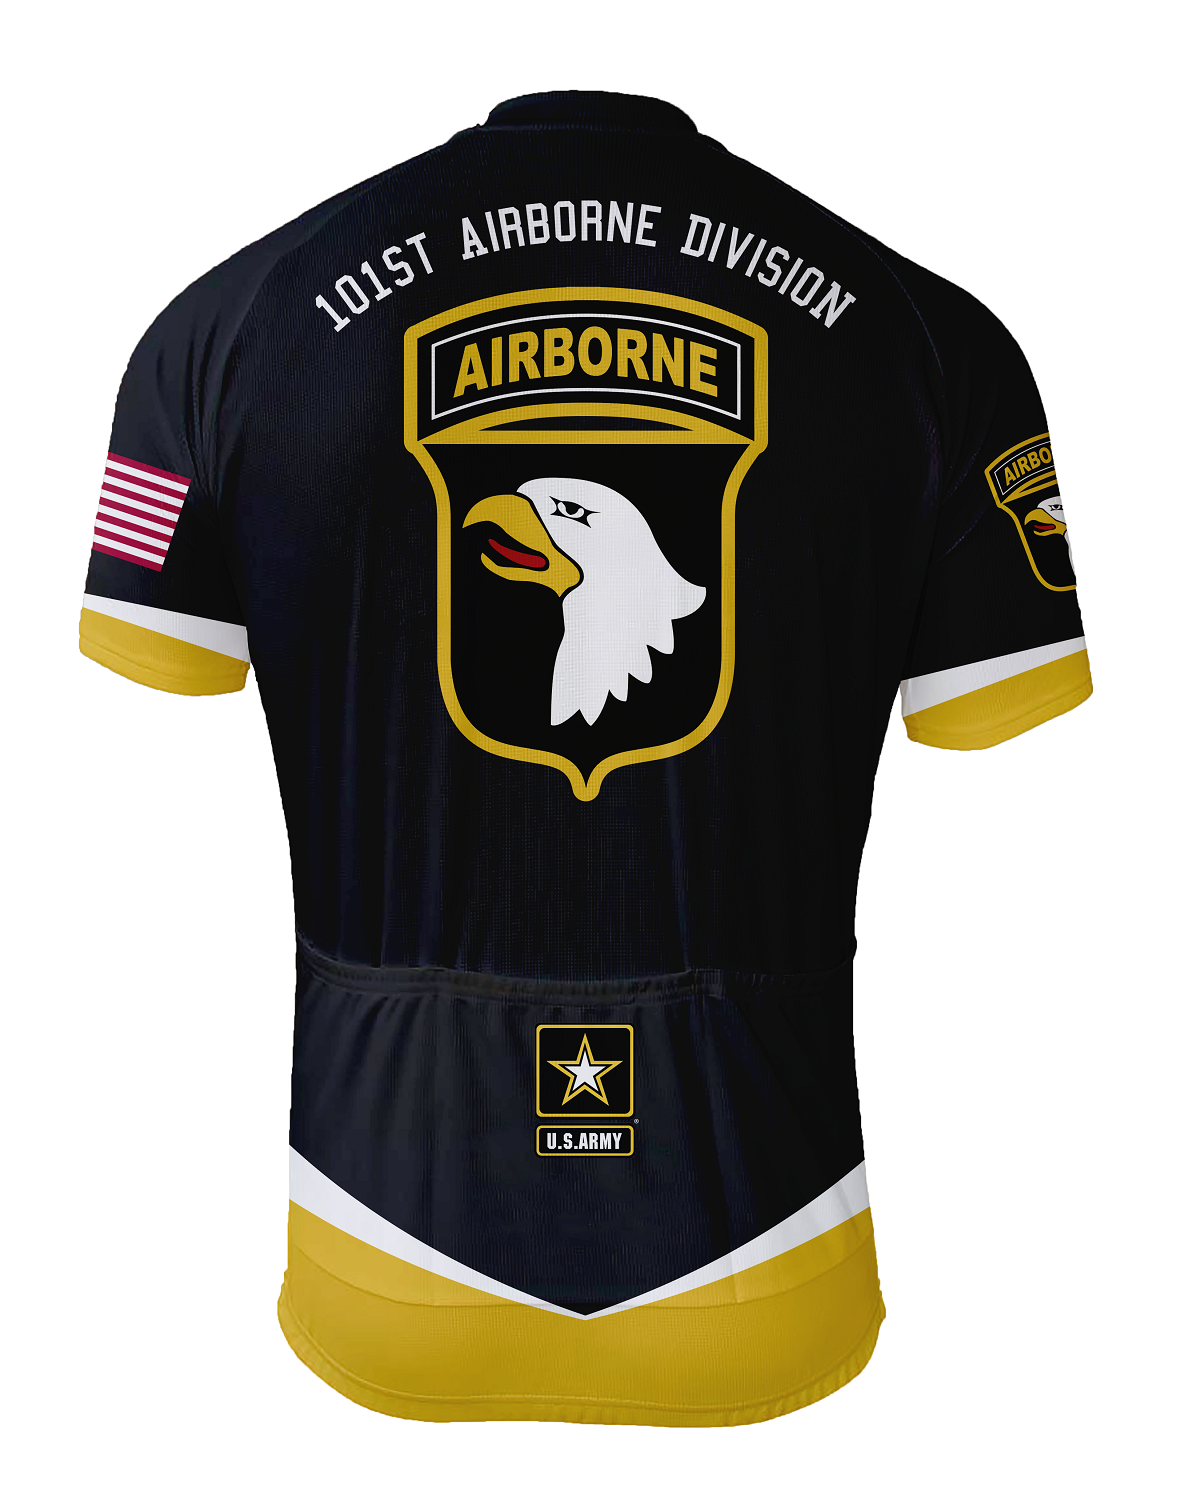 a5831b8e1 101st Airborne Division Cycling Jersey